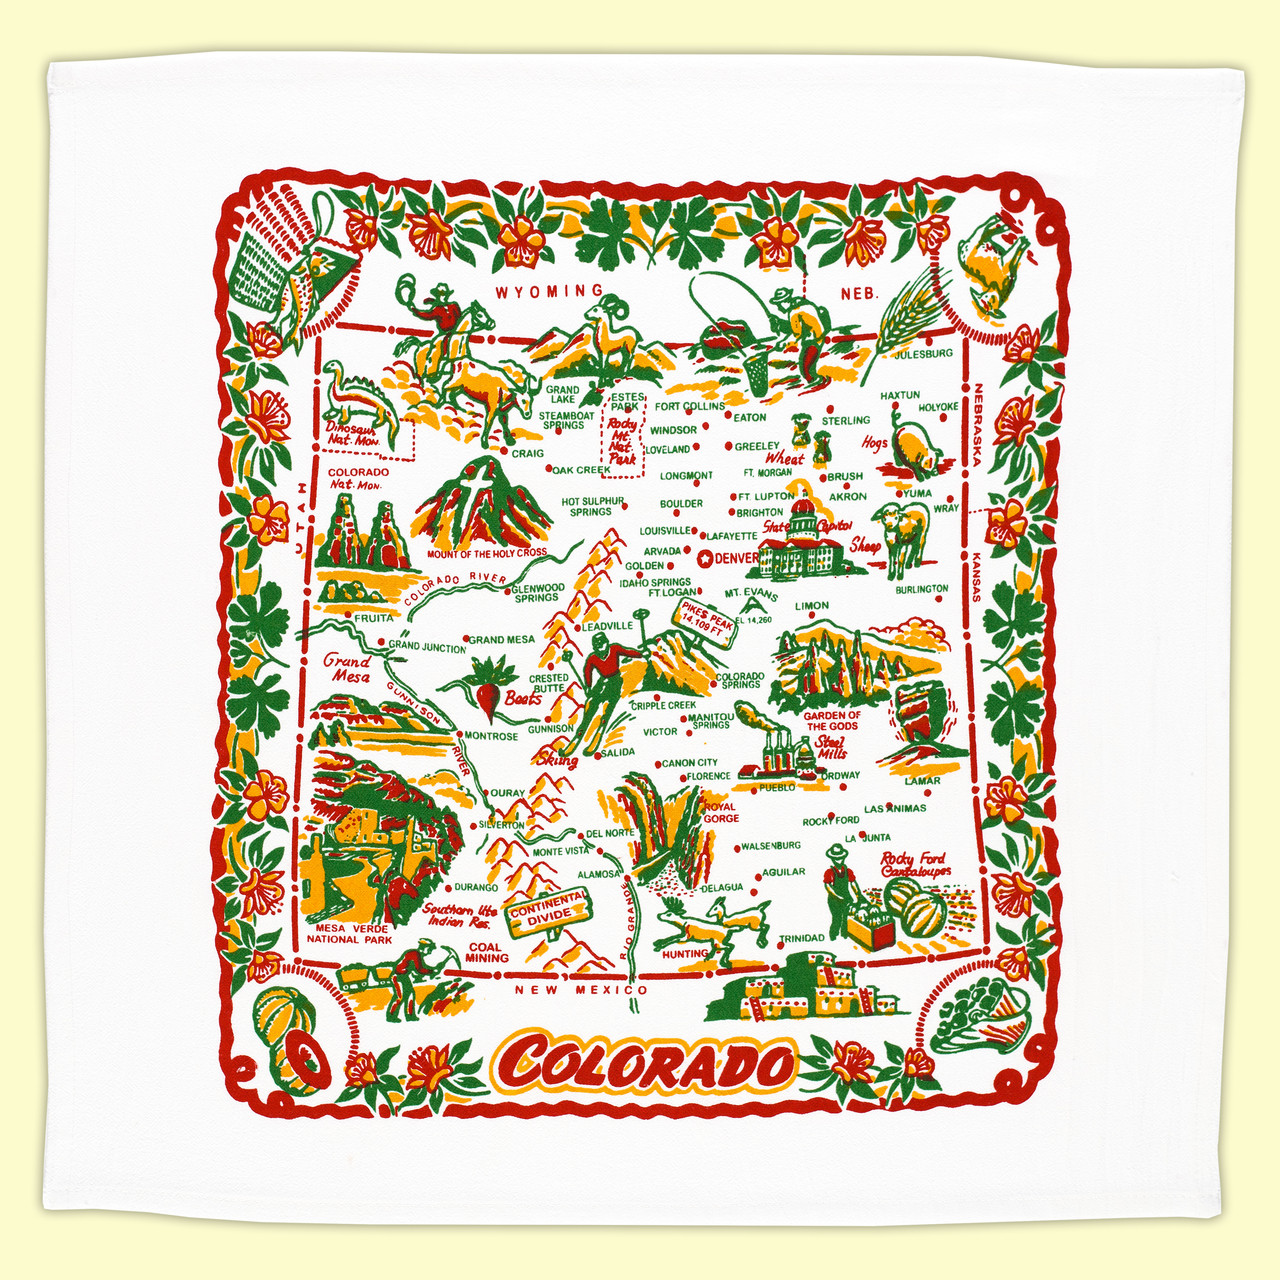 Aguilar Colorado Map.Colorado Map Towel Red And White Kitchen Company